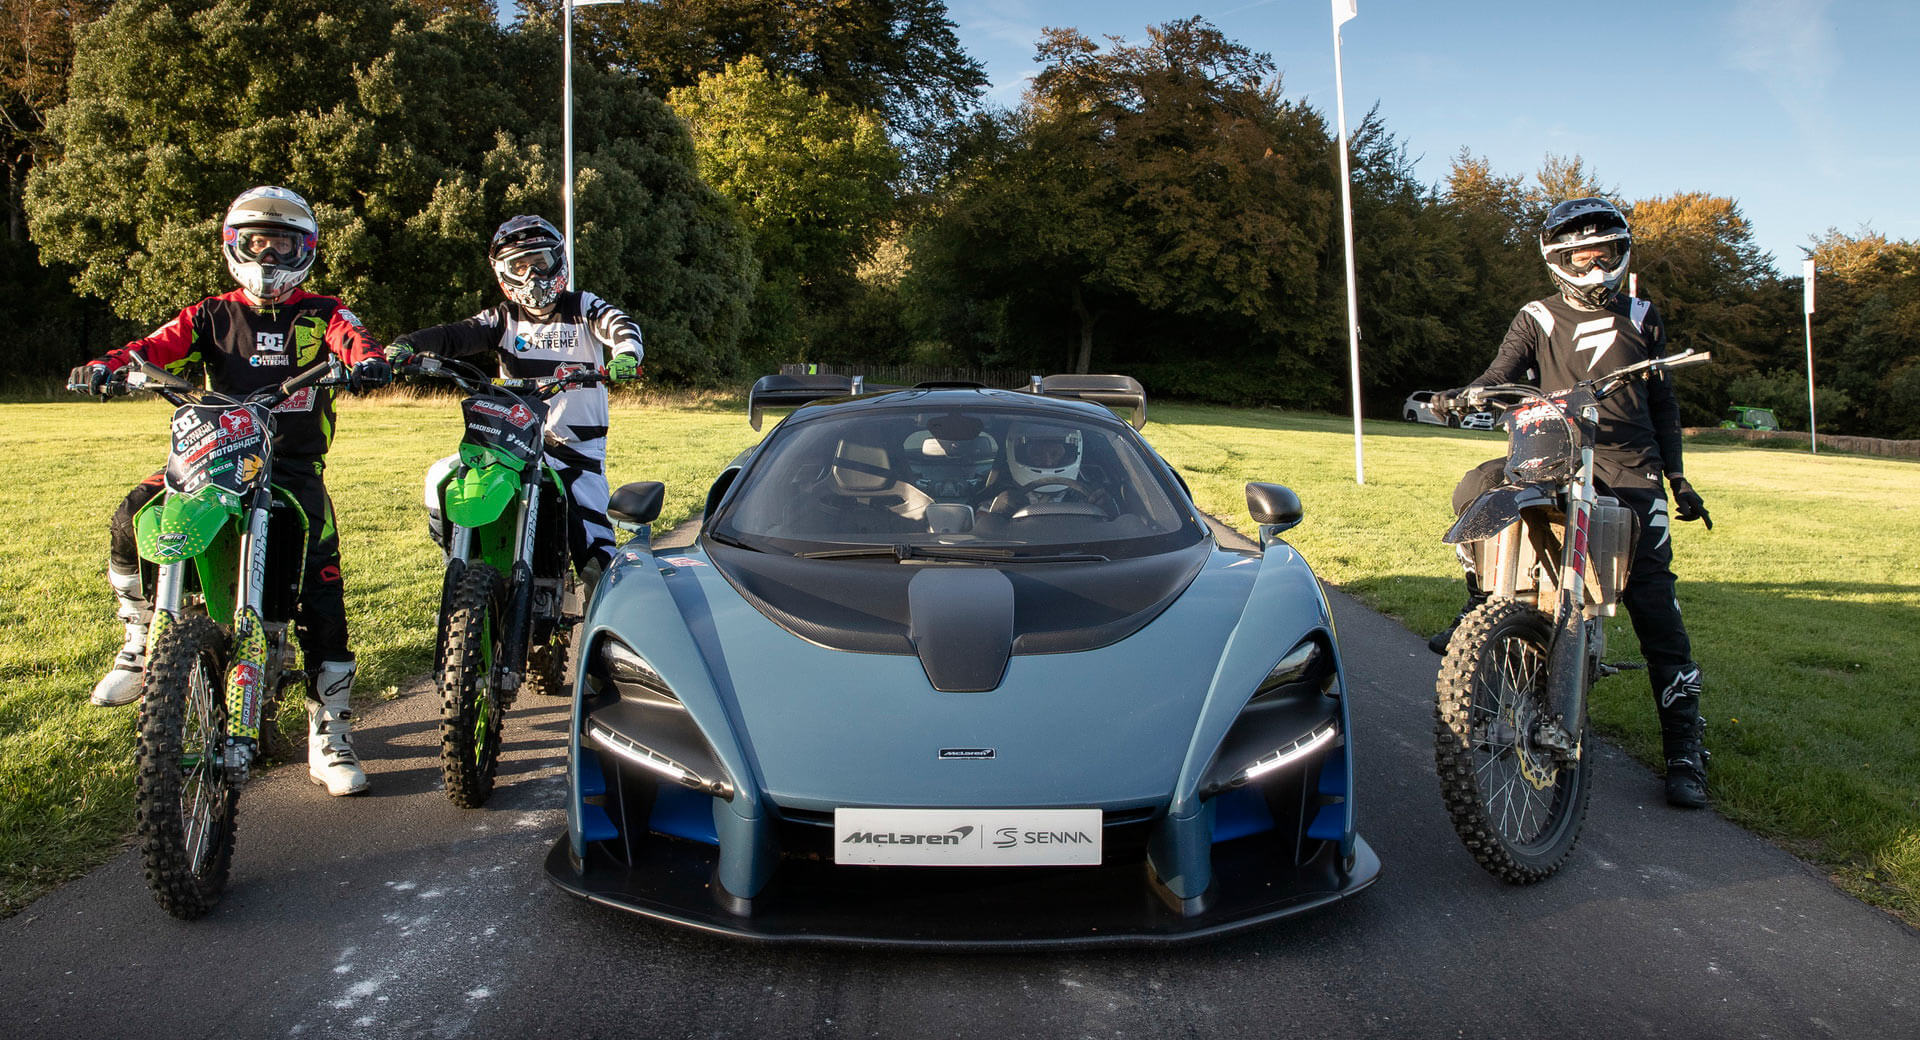 McLaren Senna Celebrates Launch Of Forza Horizon 4 By